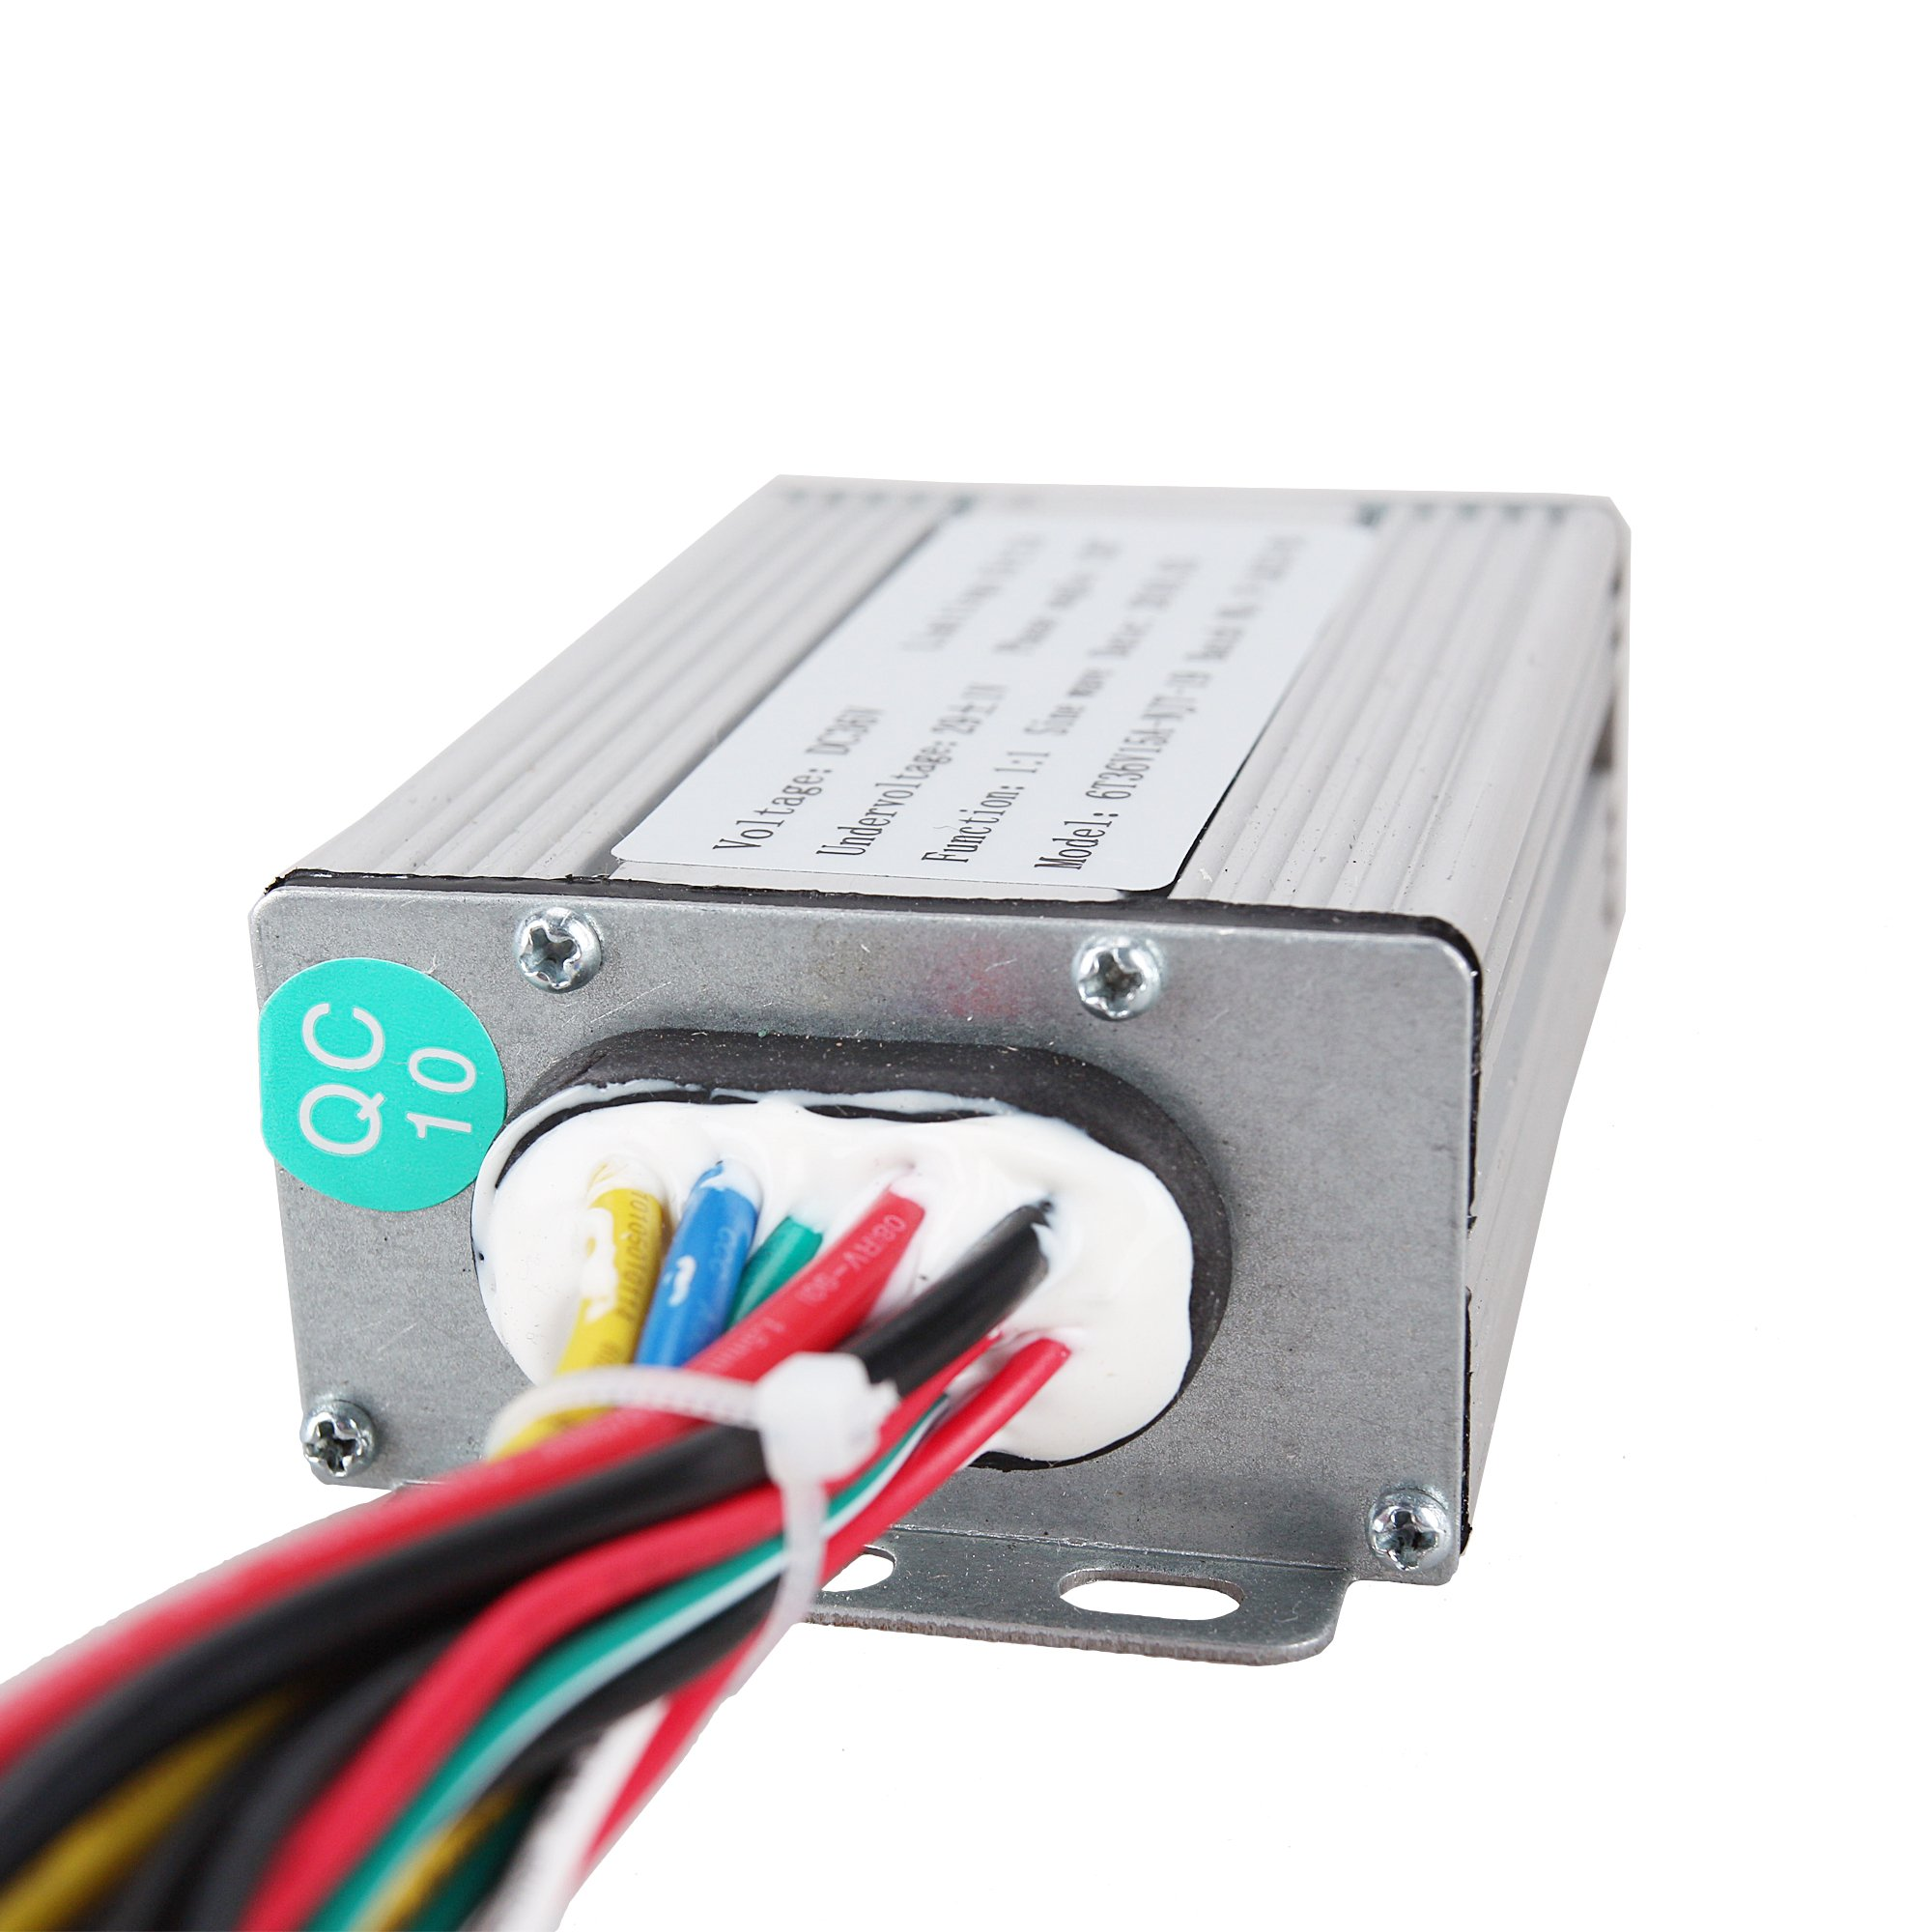 Nakto Spark City Electric Bicycle Controller for Spark 26''/20''/22'' City Ebike by Nakto (Image #2)